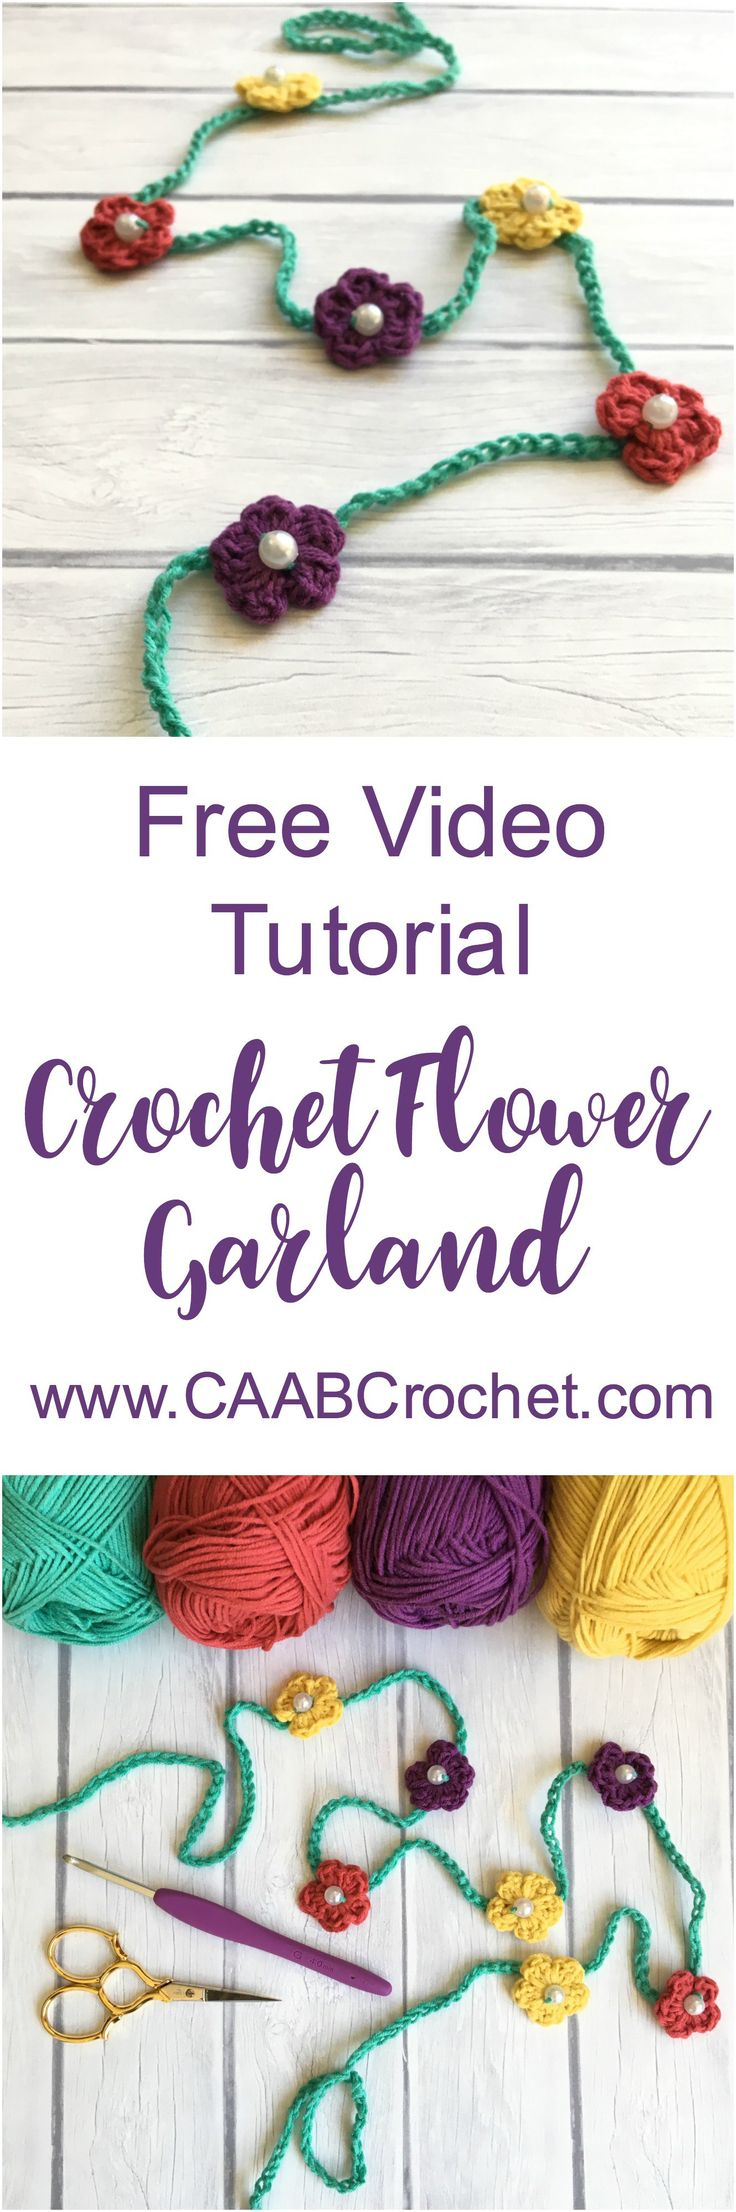 In this beginner-friendly video tutorial, you will learn to make a simple crochet flower garland, using basic crochet stitches and beads. The pattern is easy to adjust for sizing preferences. Great for anything from a girl's headband to a decorative piece for your home!